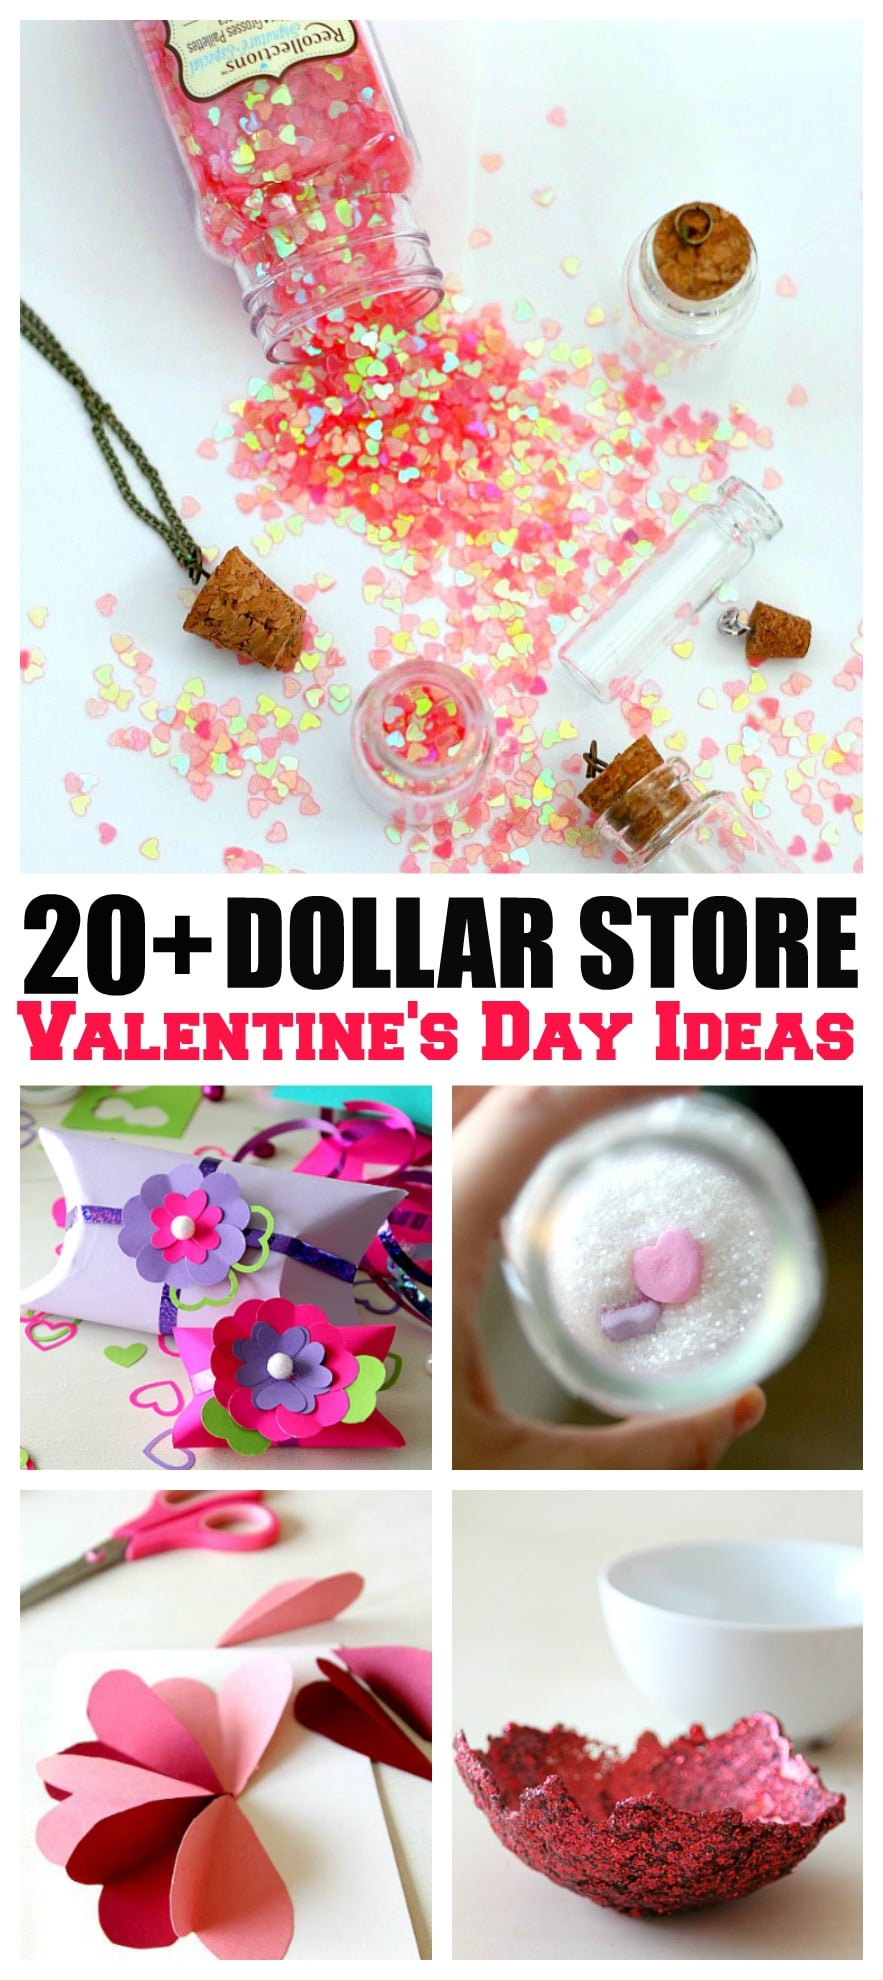 20 awesome dollar store valentines ideas  momdot